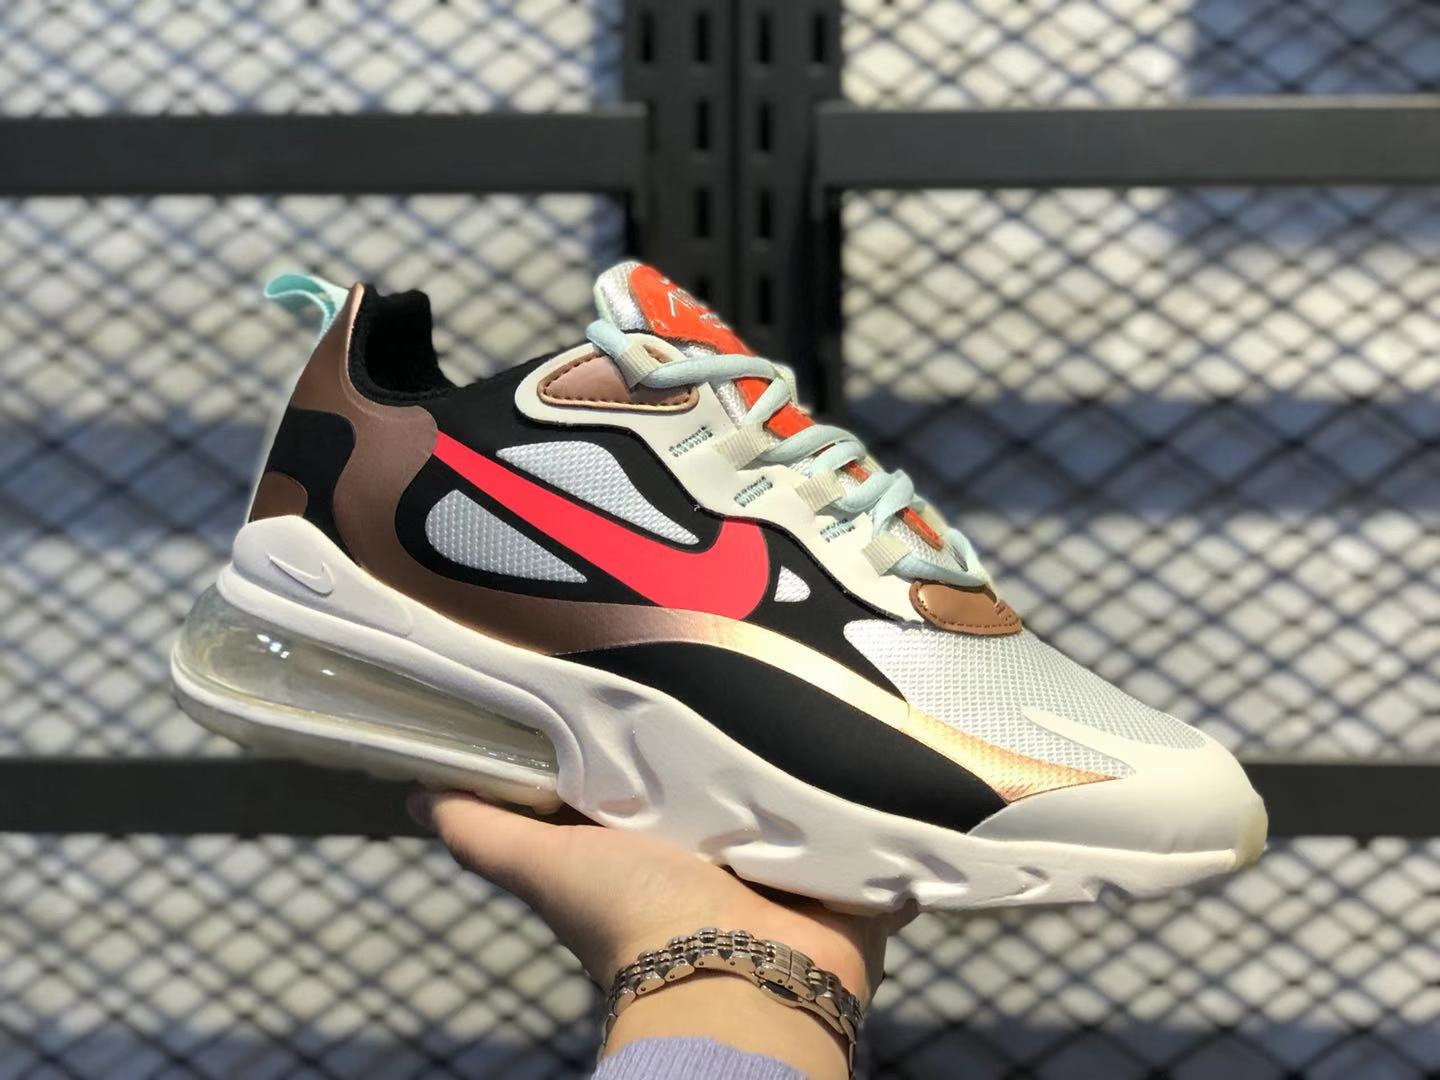 Nike Air Max 270 React Sail/Black-Metallic Red Bronze-Pure Platinum Online Buy